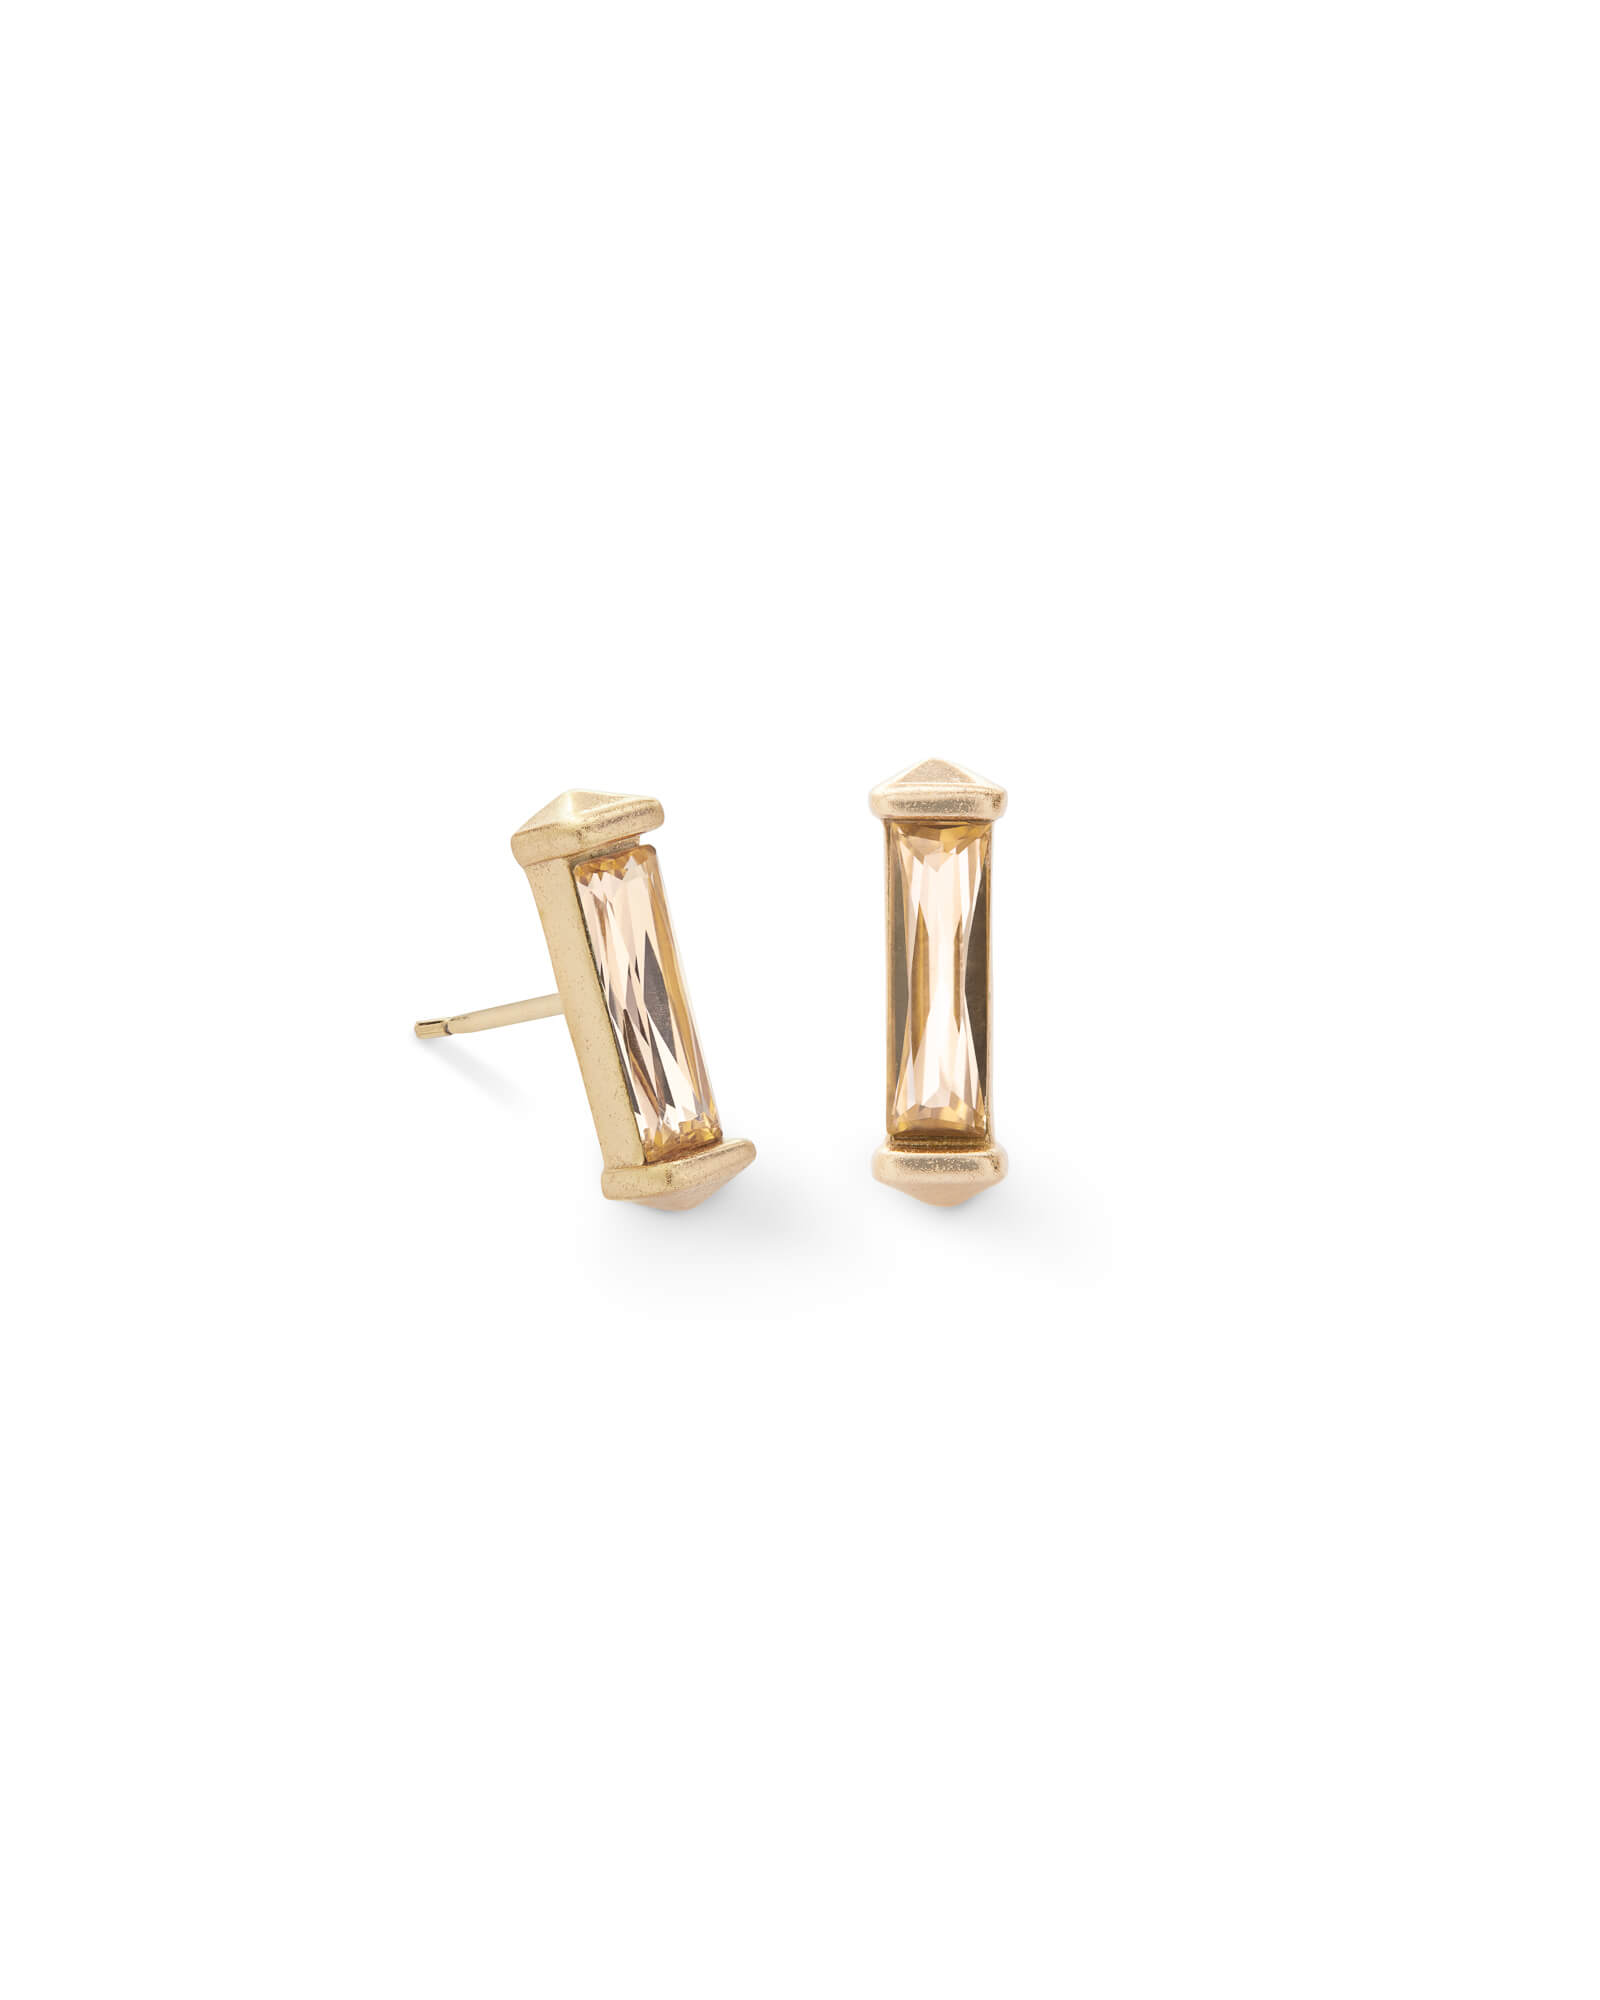 Fletcher Gold Stud Earrings in Smoky Crystal